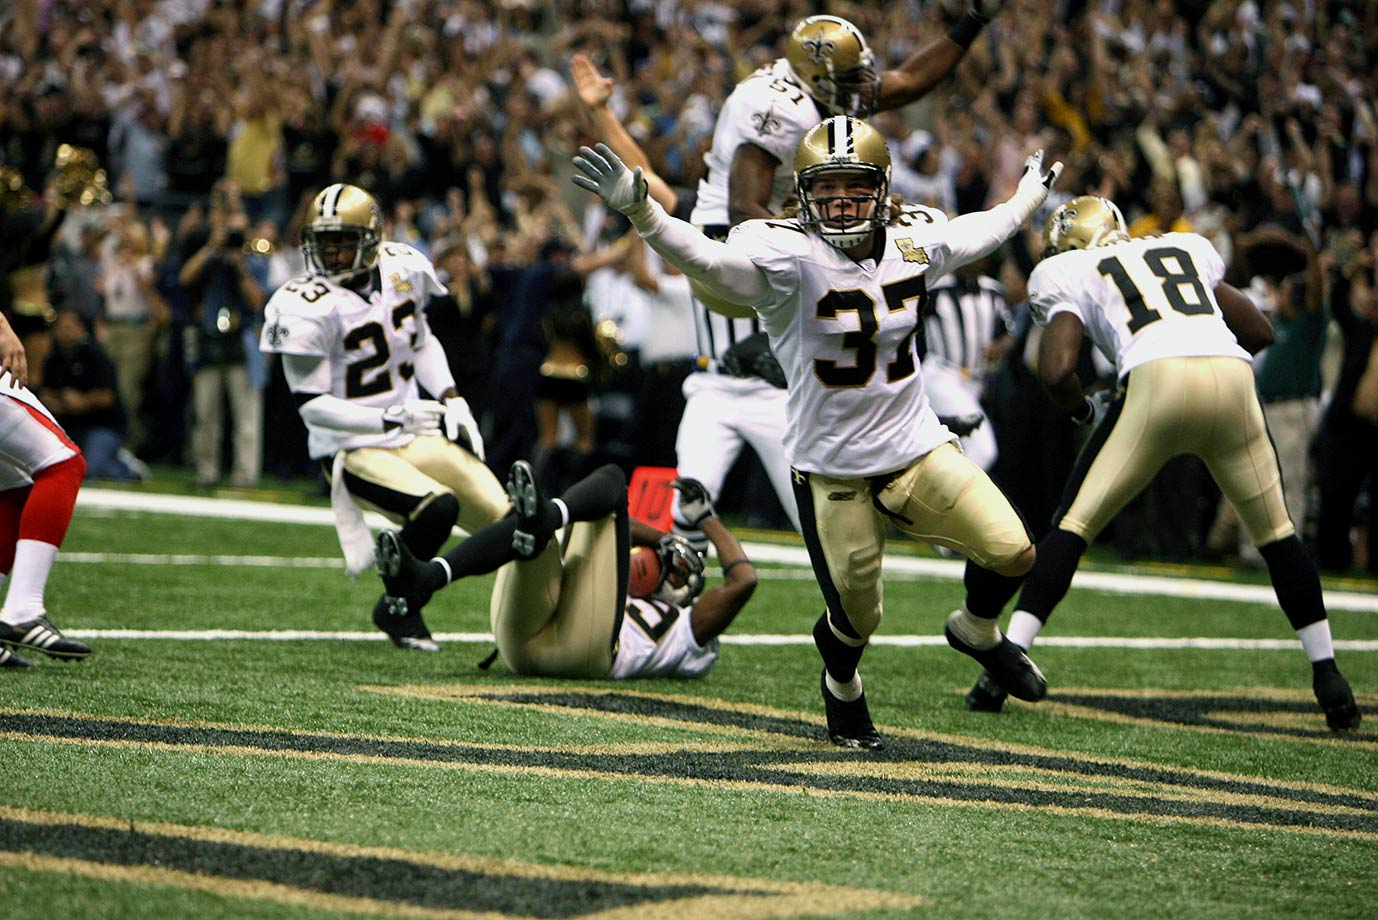 Sept. 25, 2006: Steve Gleason's blocked punt that teammate Curtis Deloatch landed on in the end zone on just the fourth play of the game set the tone for the game and the season. The Saints beat their divisional rival Falcons that night 23–3.